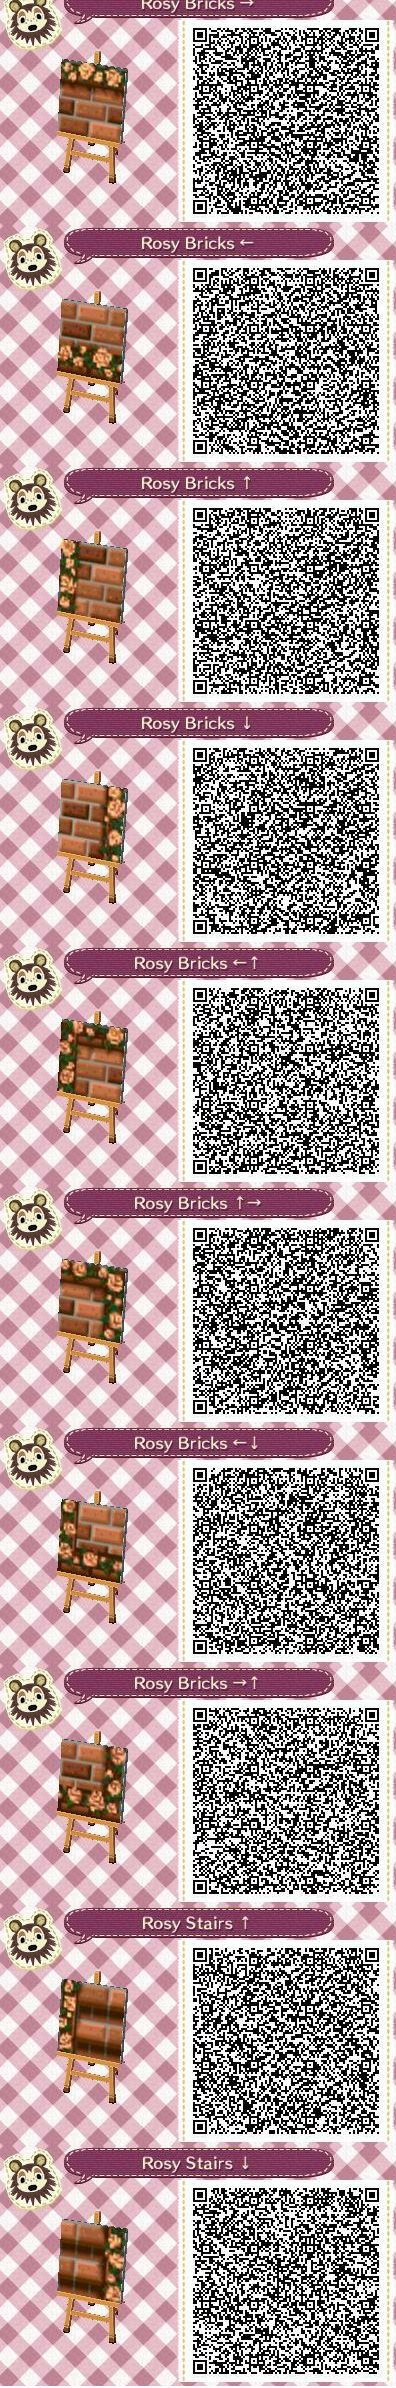 Pin By Bonnie H On Path Qr Codes For Animal Crossing New